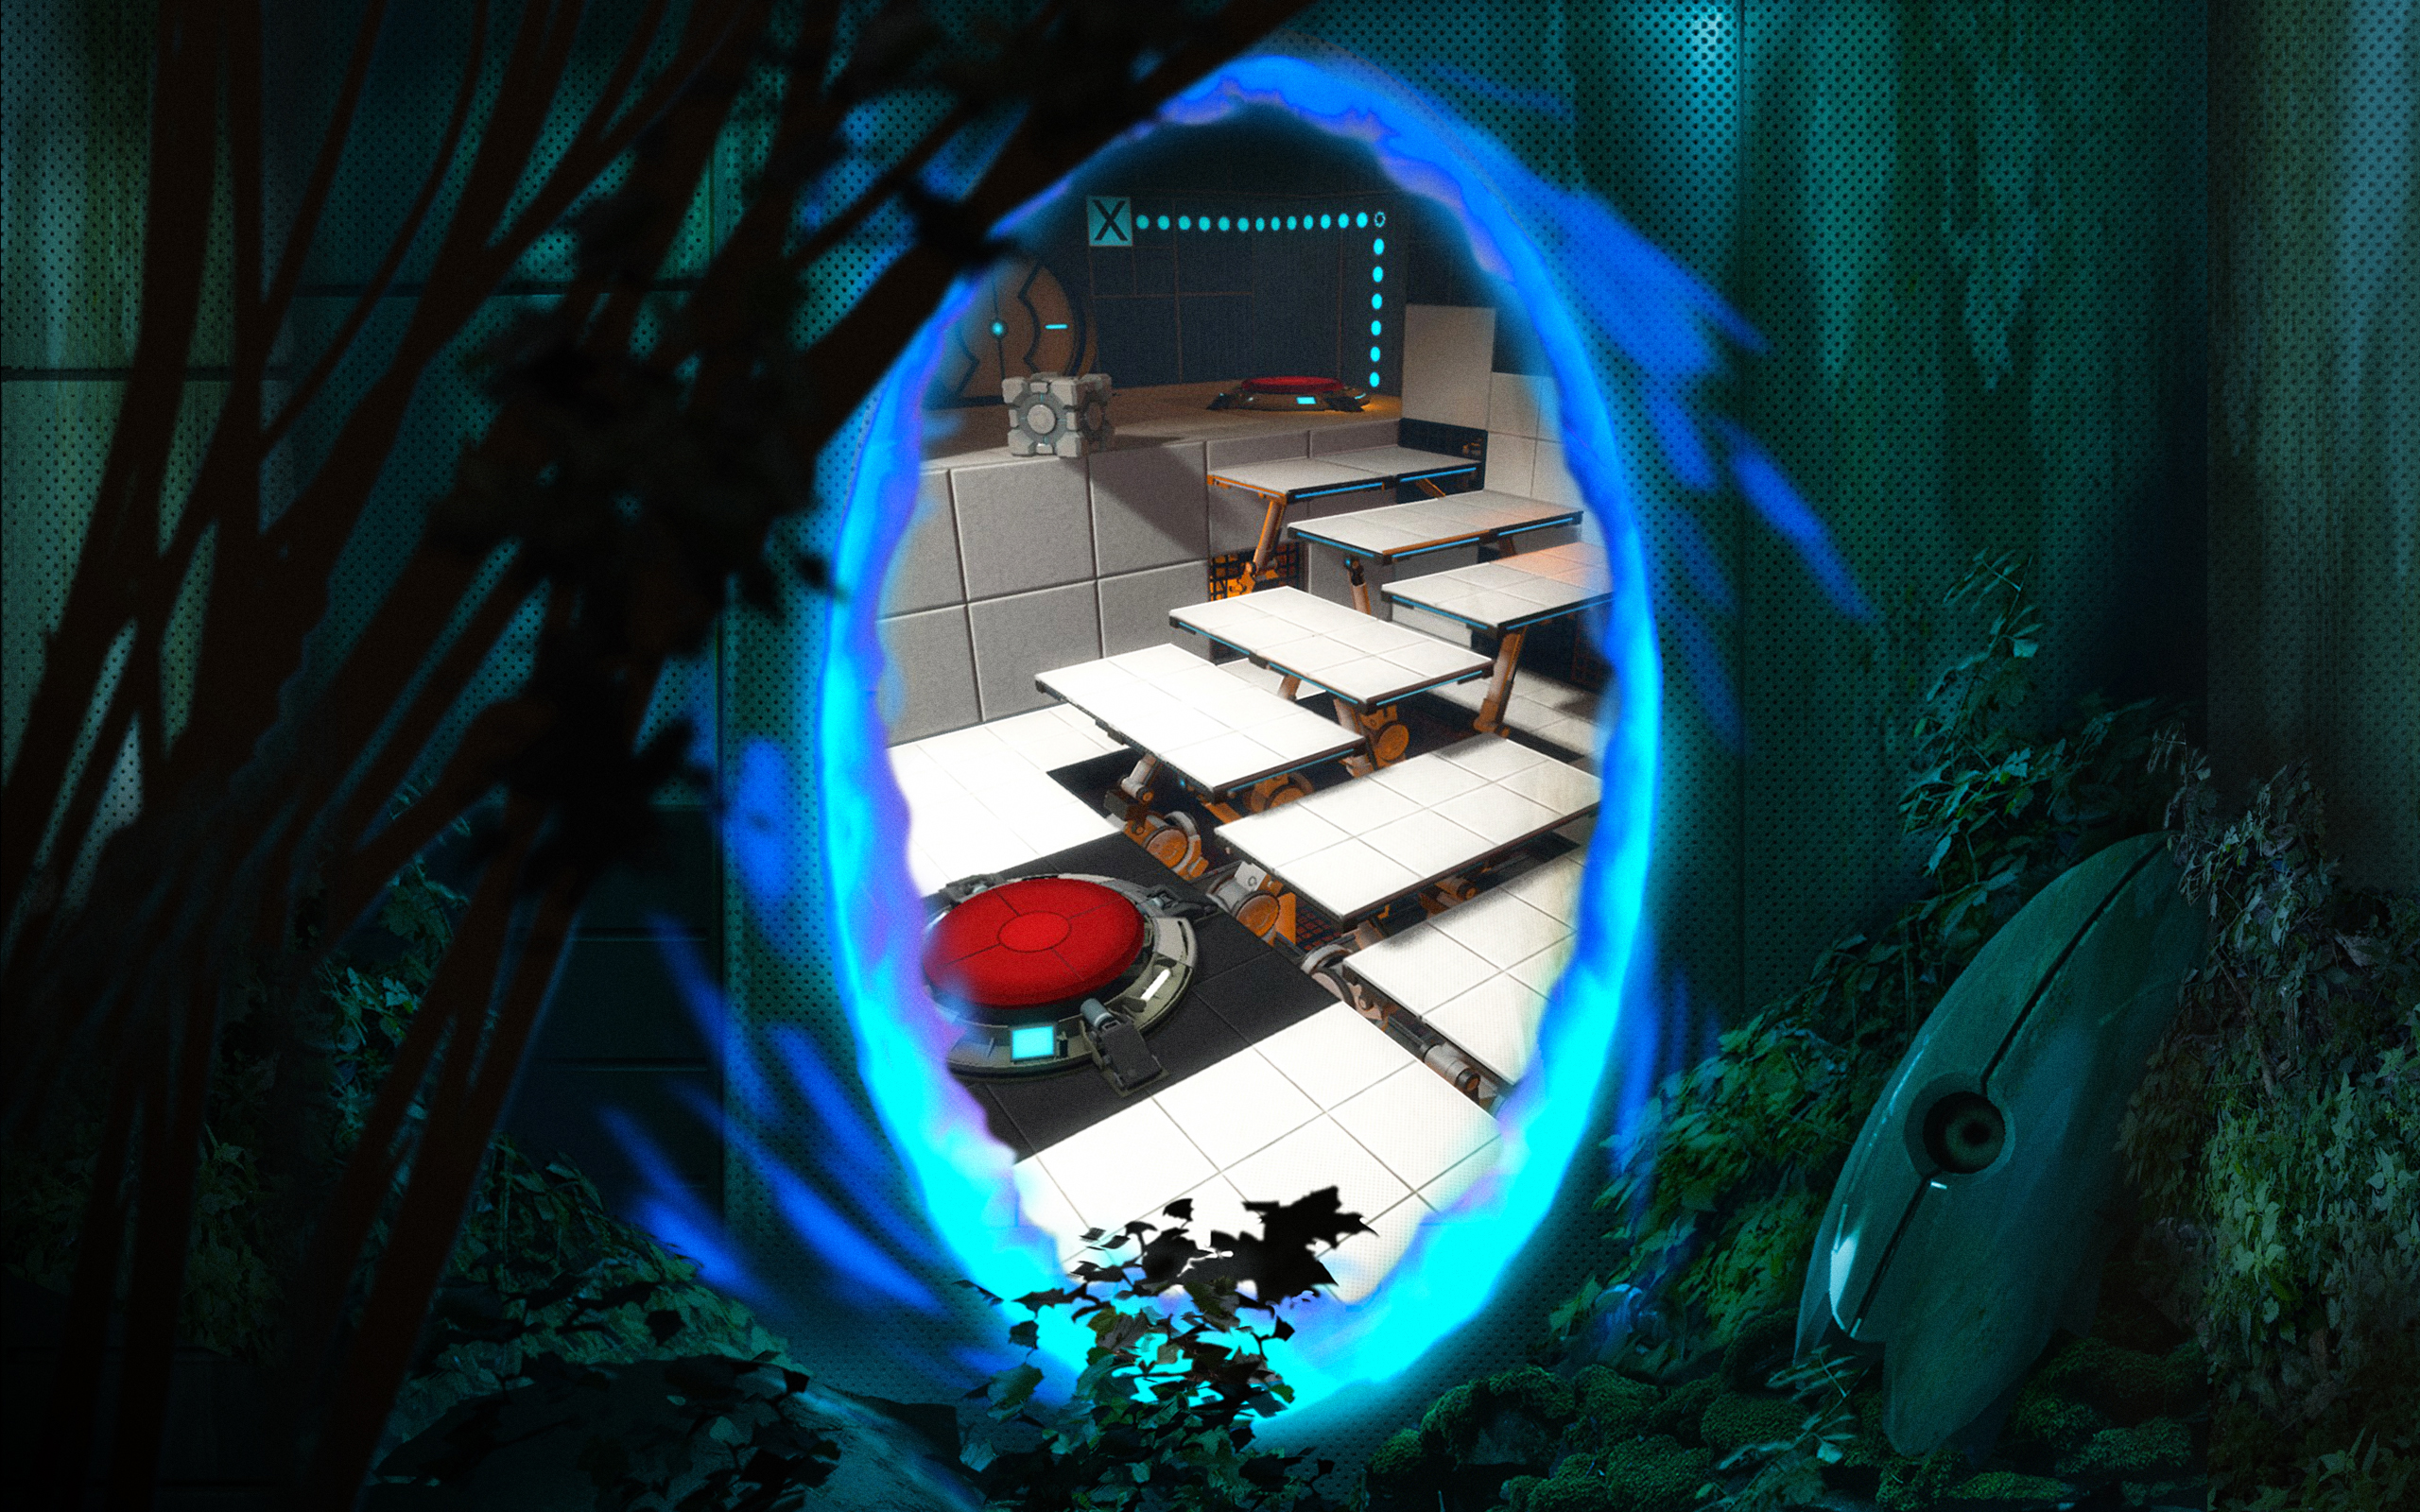 Portal Stories Vr Wallpaper Theme And Trailer HD Wallpapers Download Free Images Wallpaper [1000image.com]